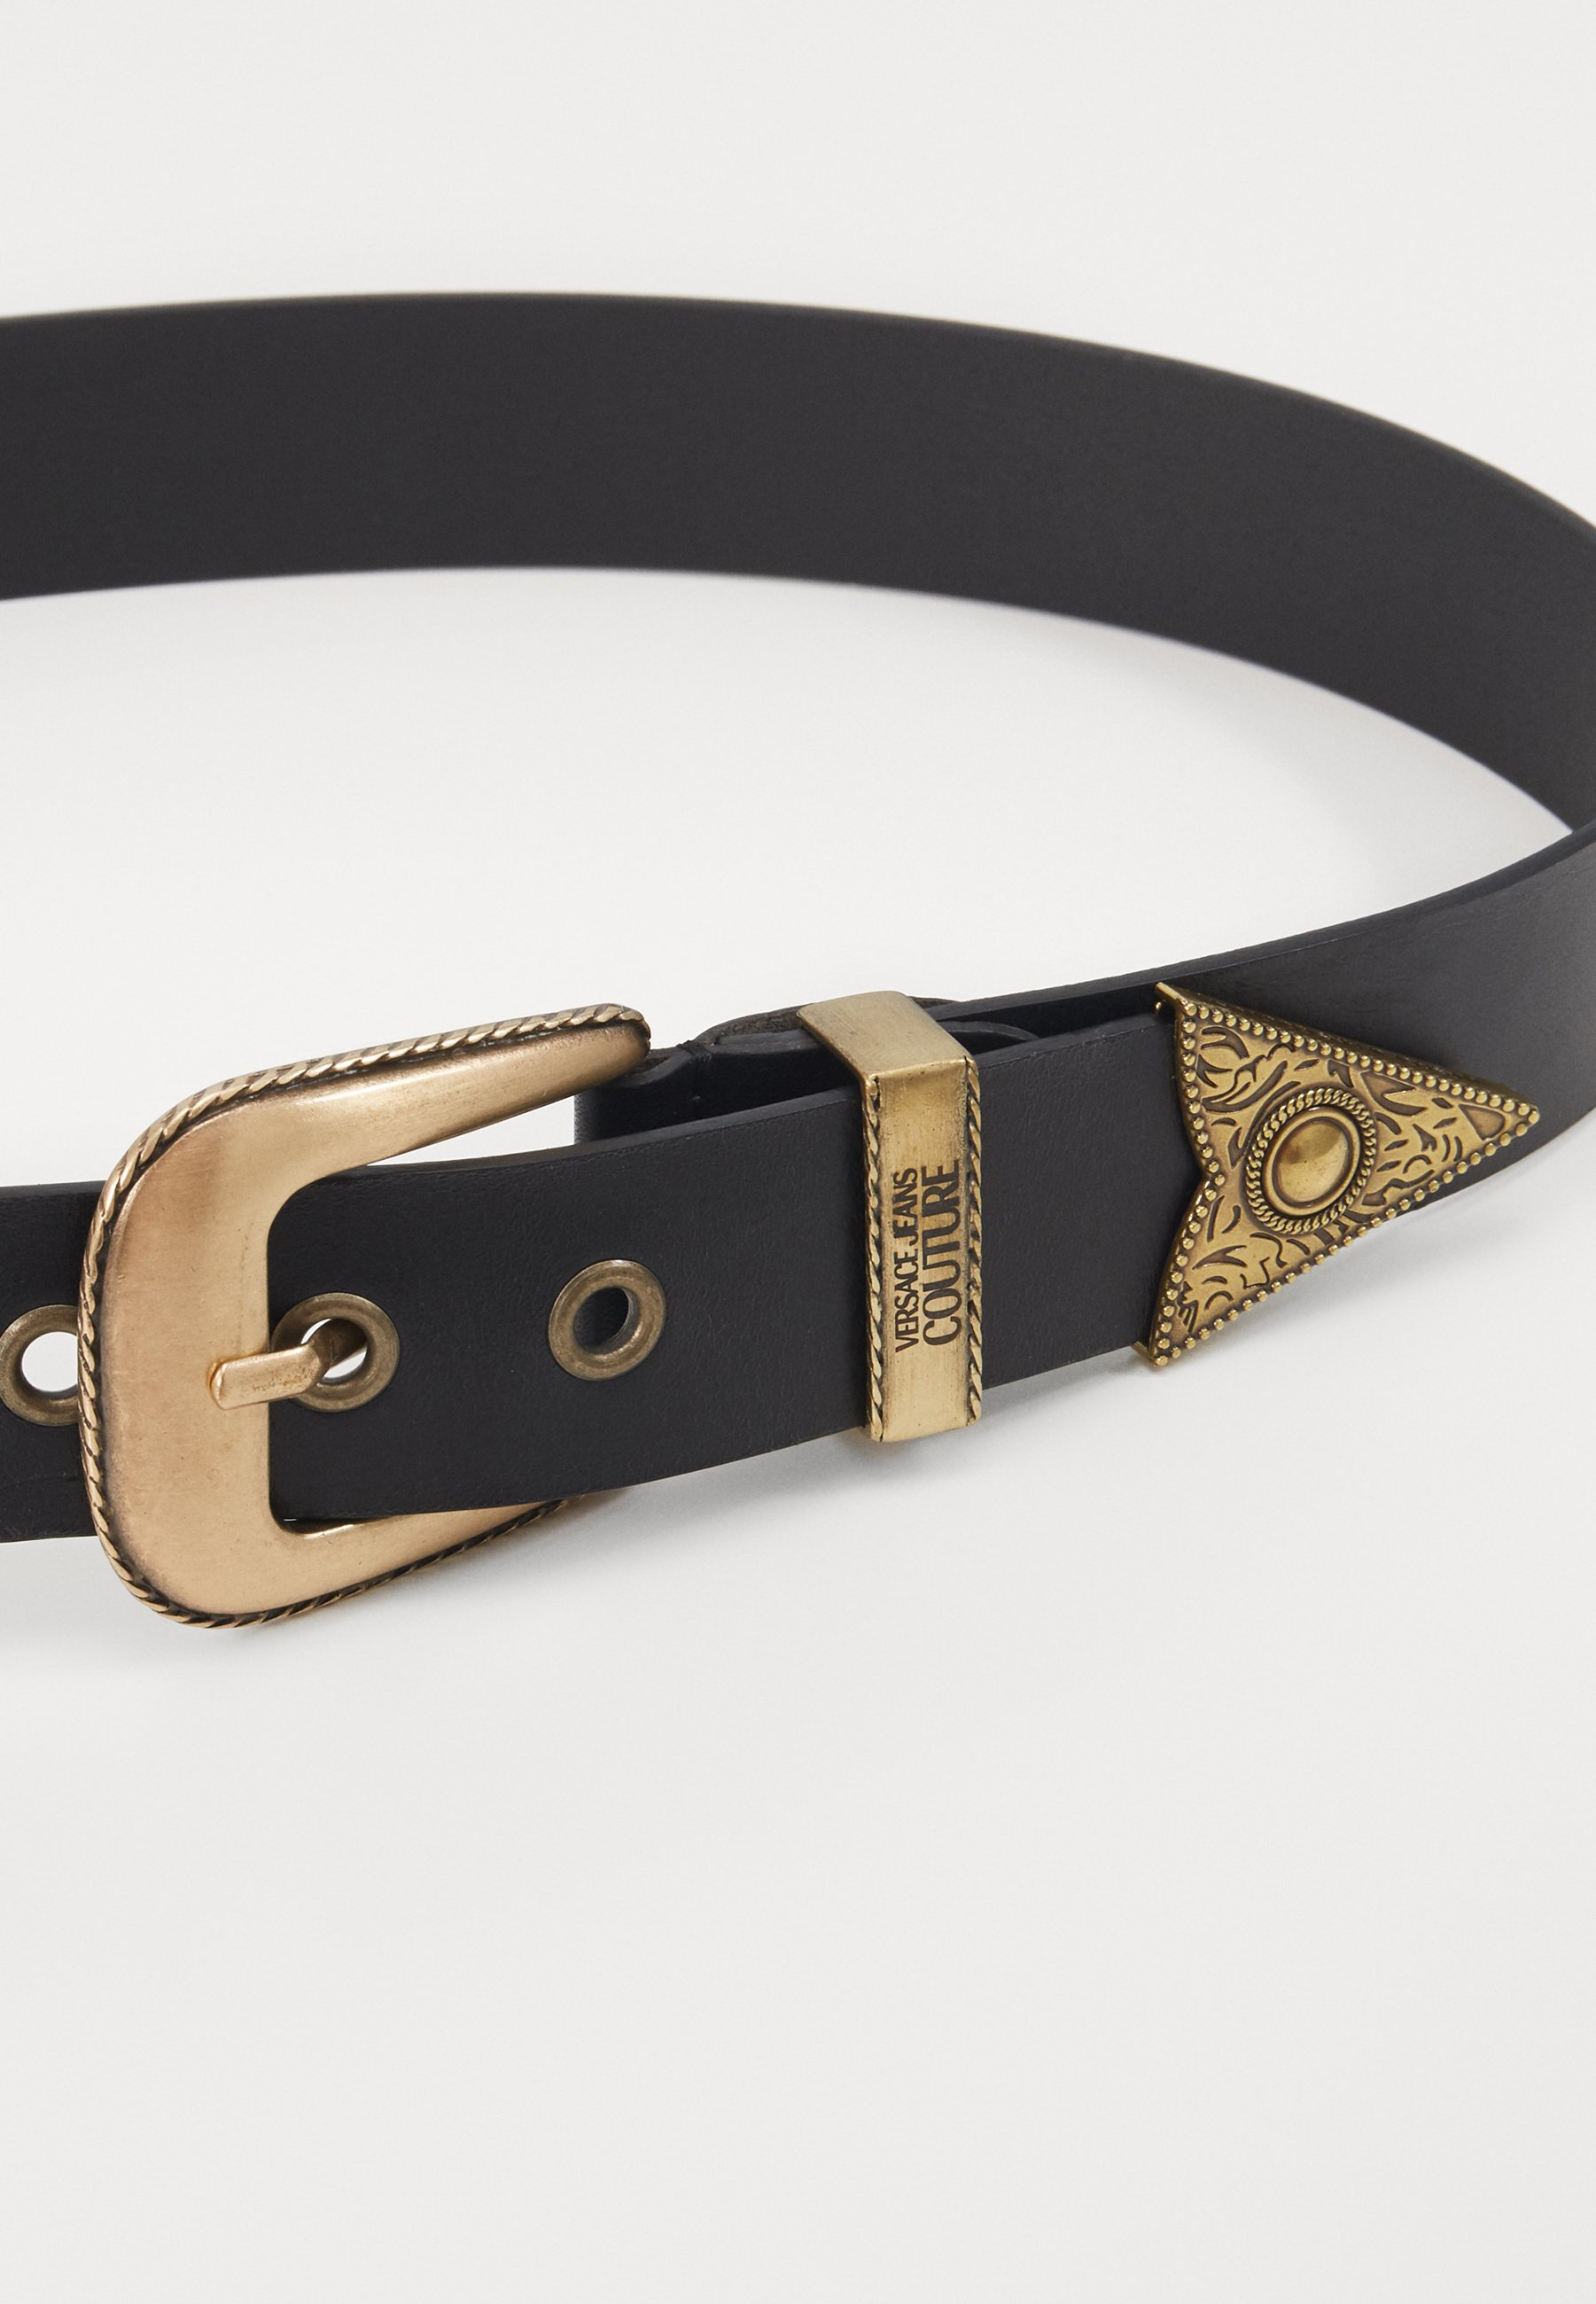 Versace Jeans Couture Belte - black/gold-coloured/svart rpUxr0IcymKgy8r